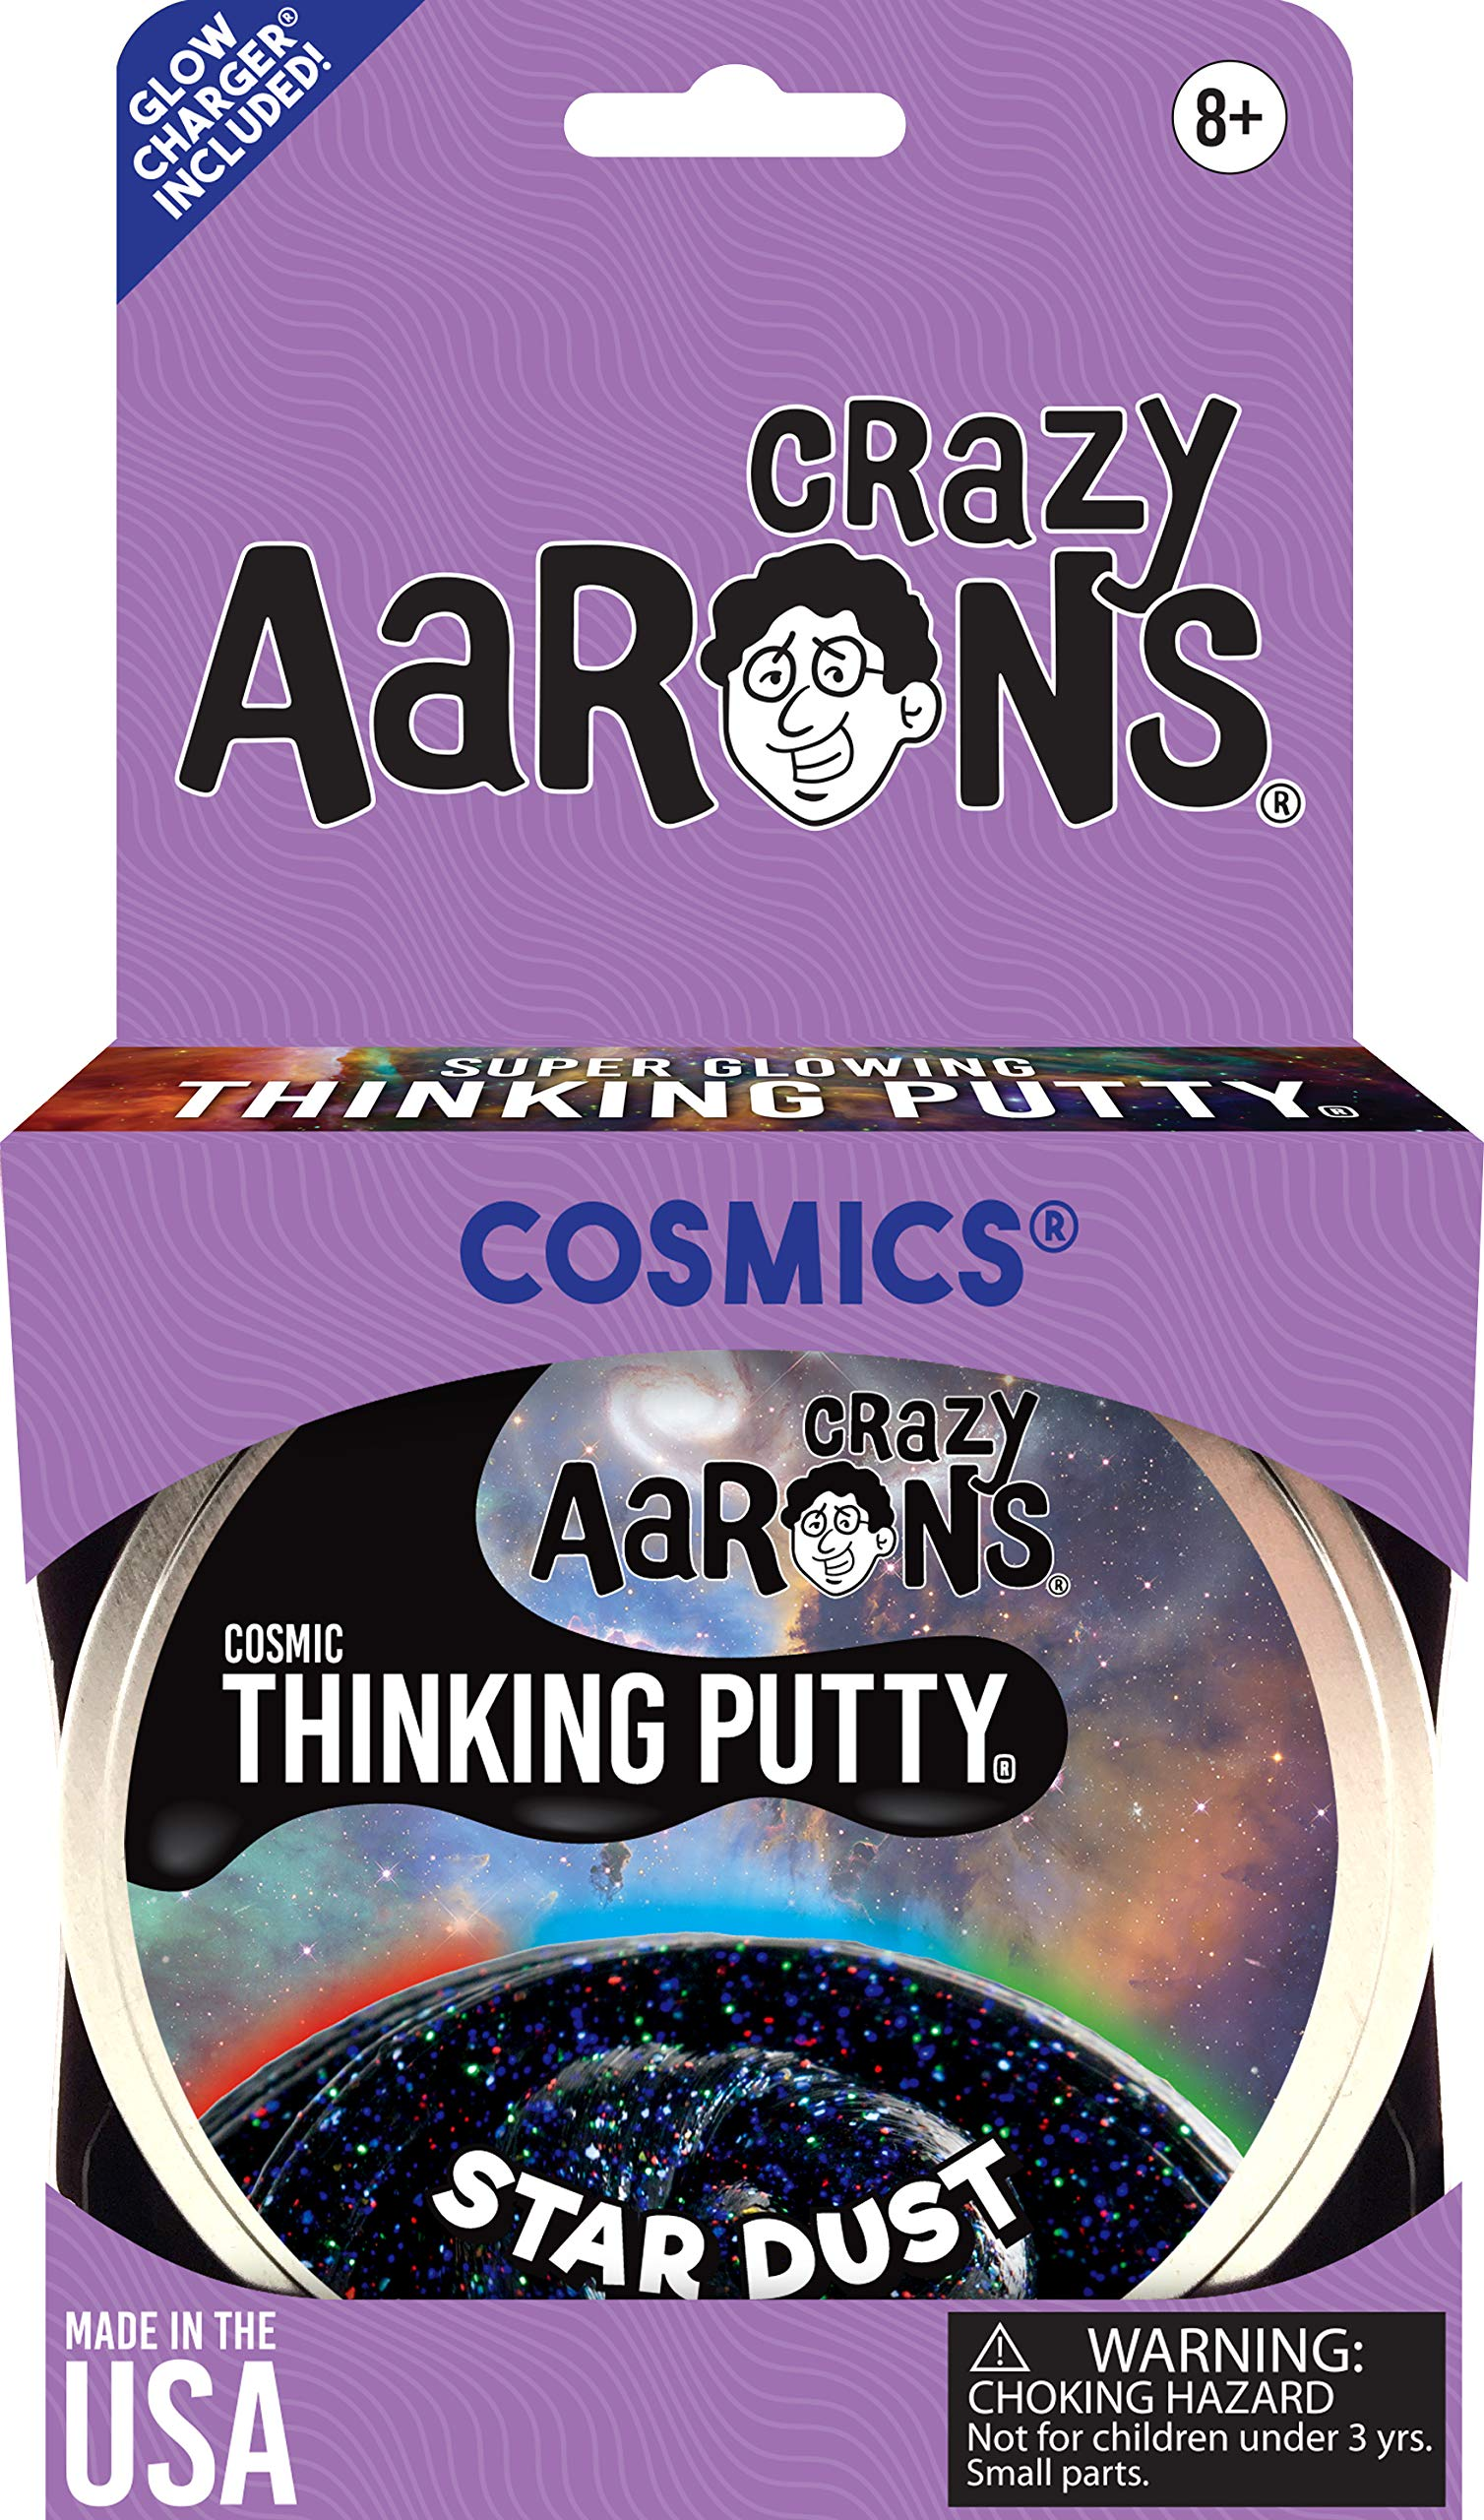 Crazy Aaron's Thinking Putty, 3.2 Ounce, Cosmic Star Dust by Crazy Aaron's (Image #6)